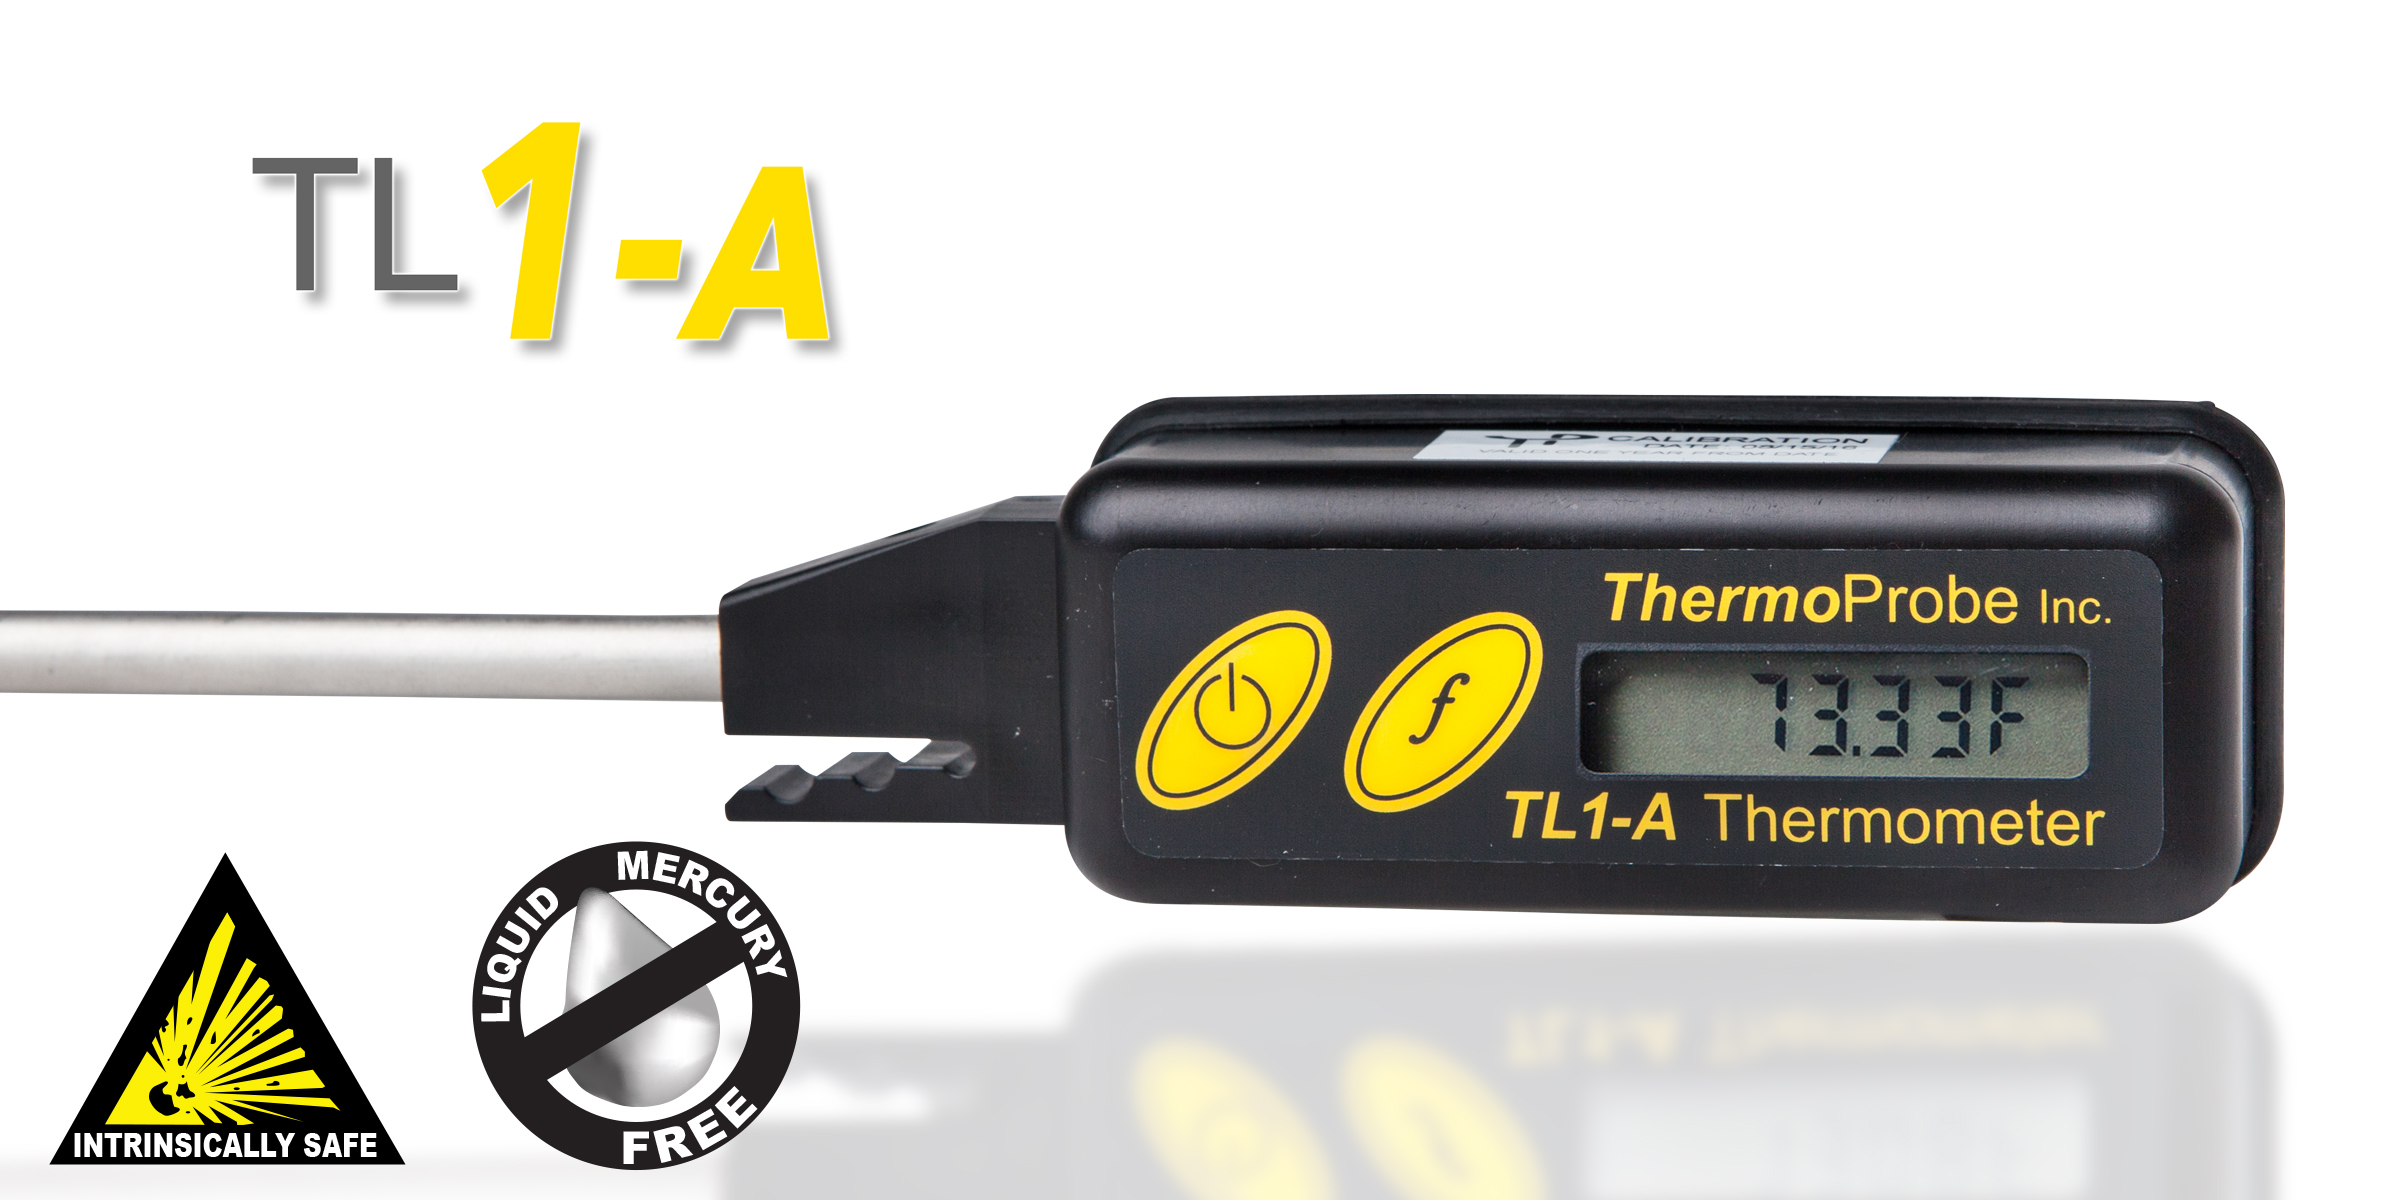 Features for the ThermoProbe TL1-A